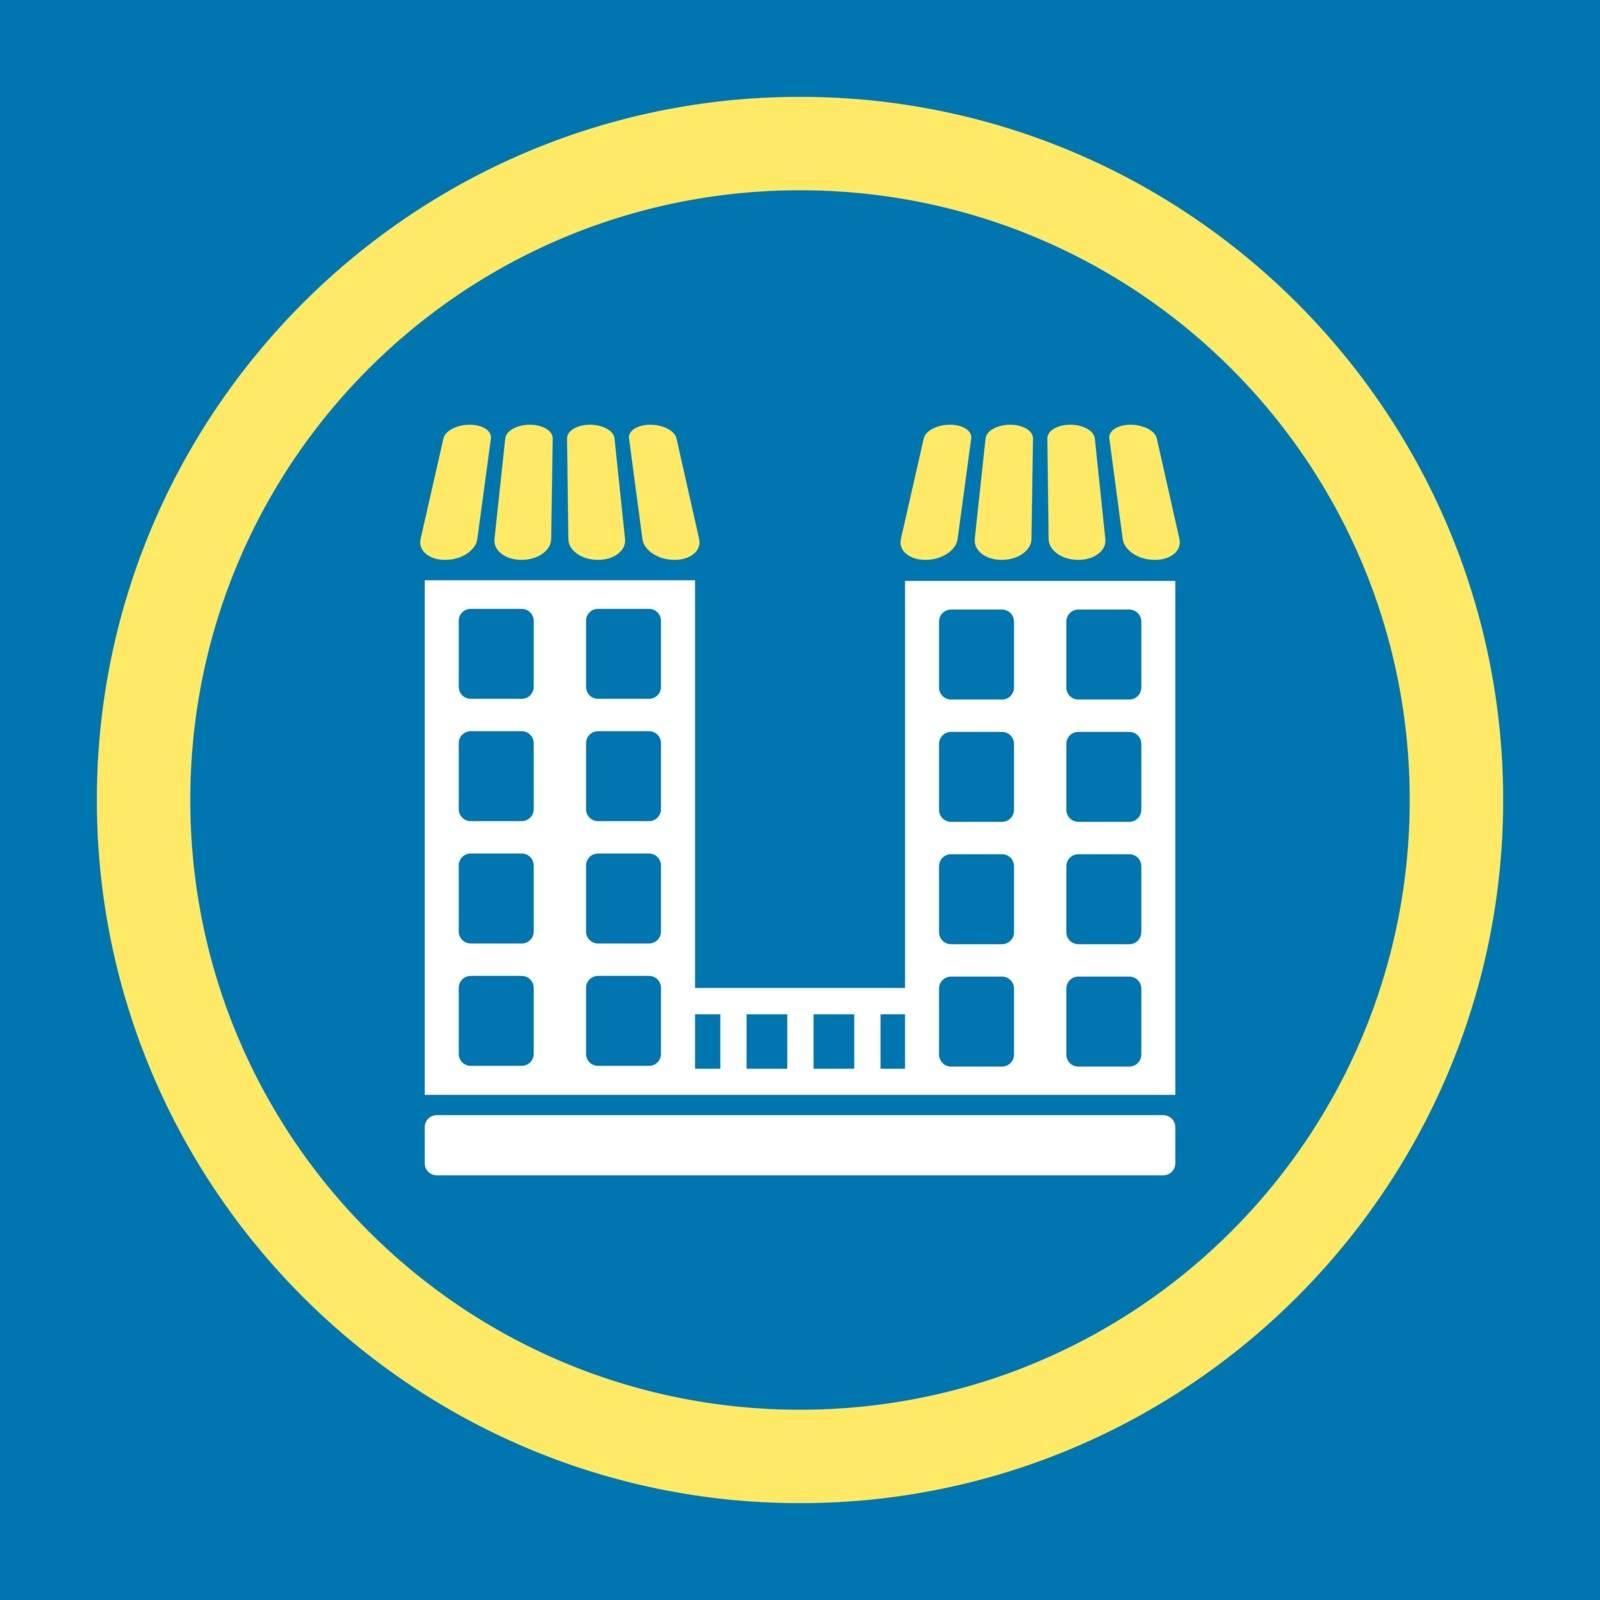 Company vector icon. This flat rounded symbol uses yellow and white colors and isolated on a blue background.